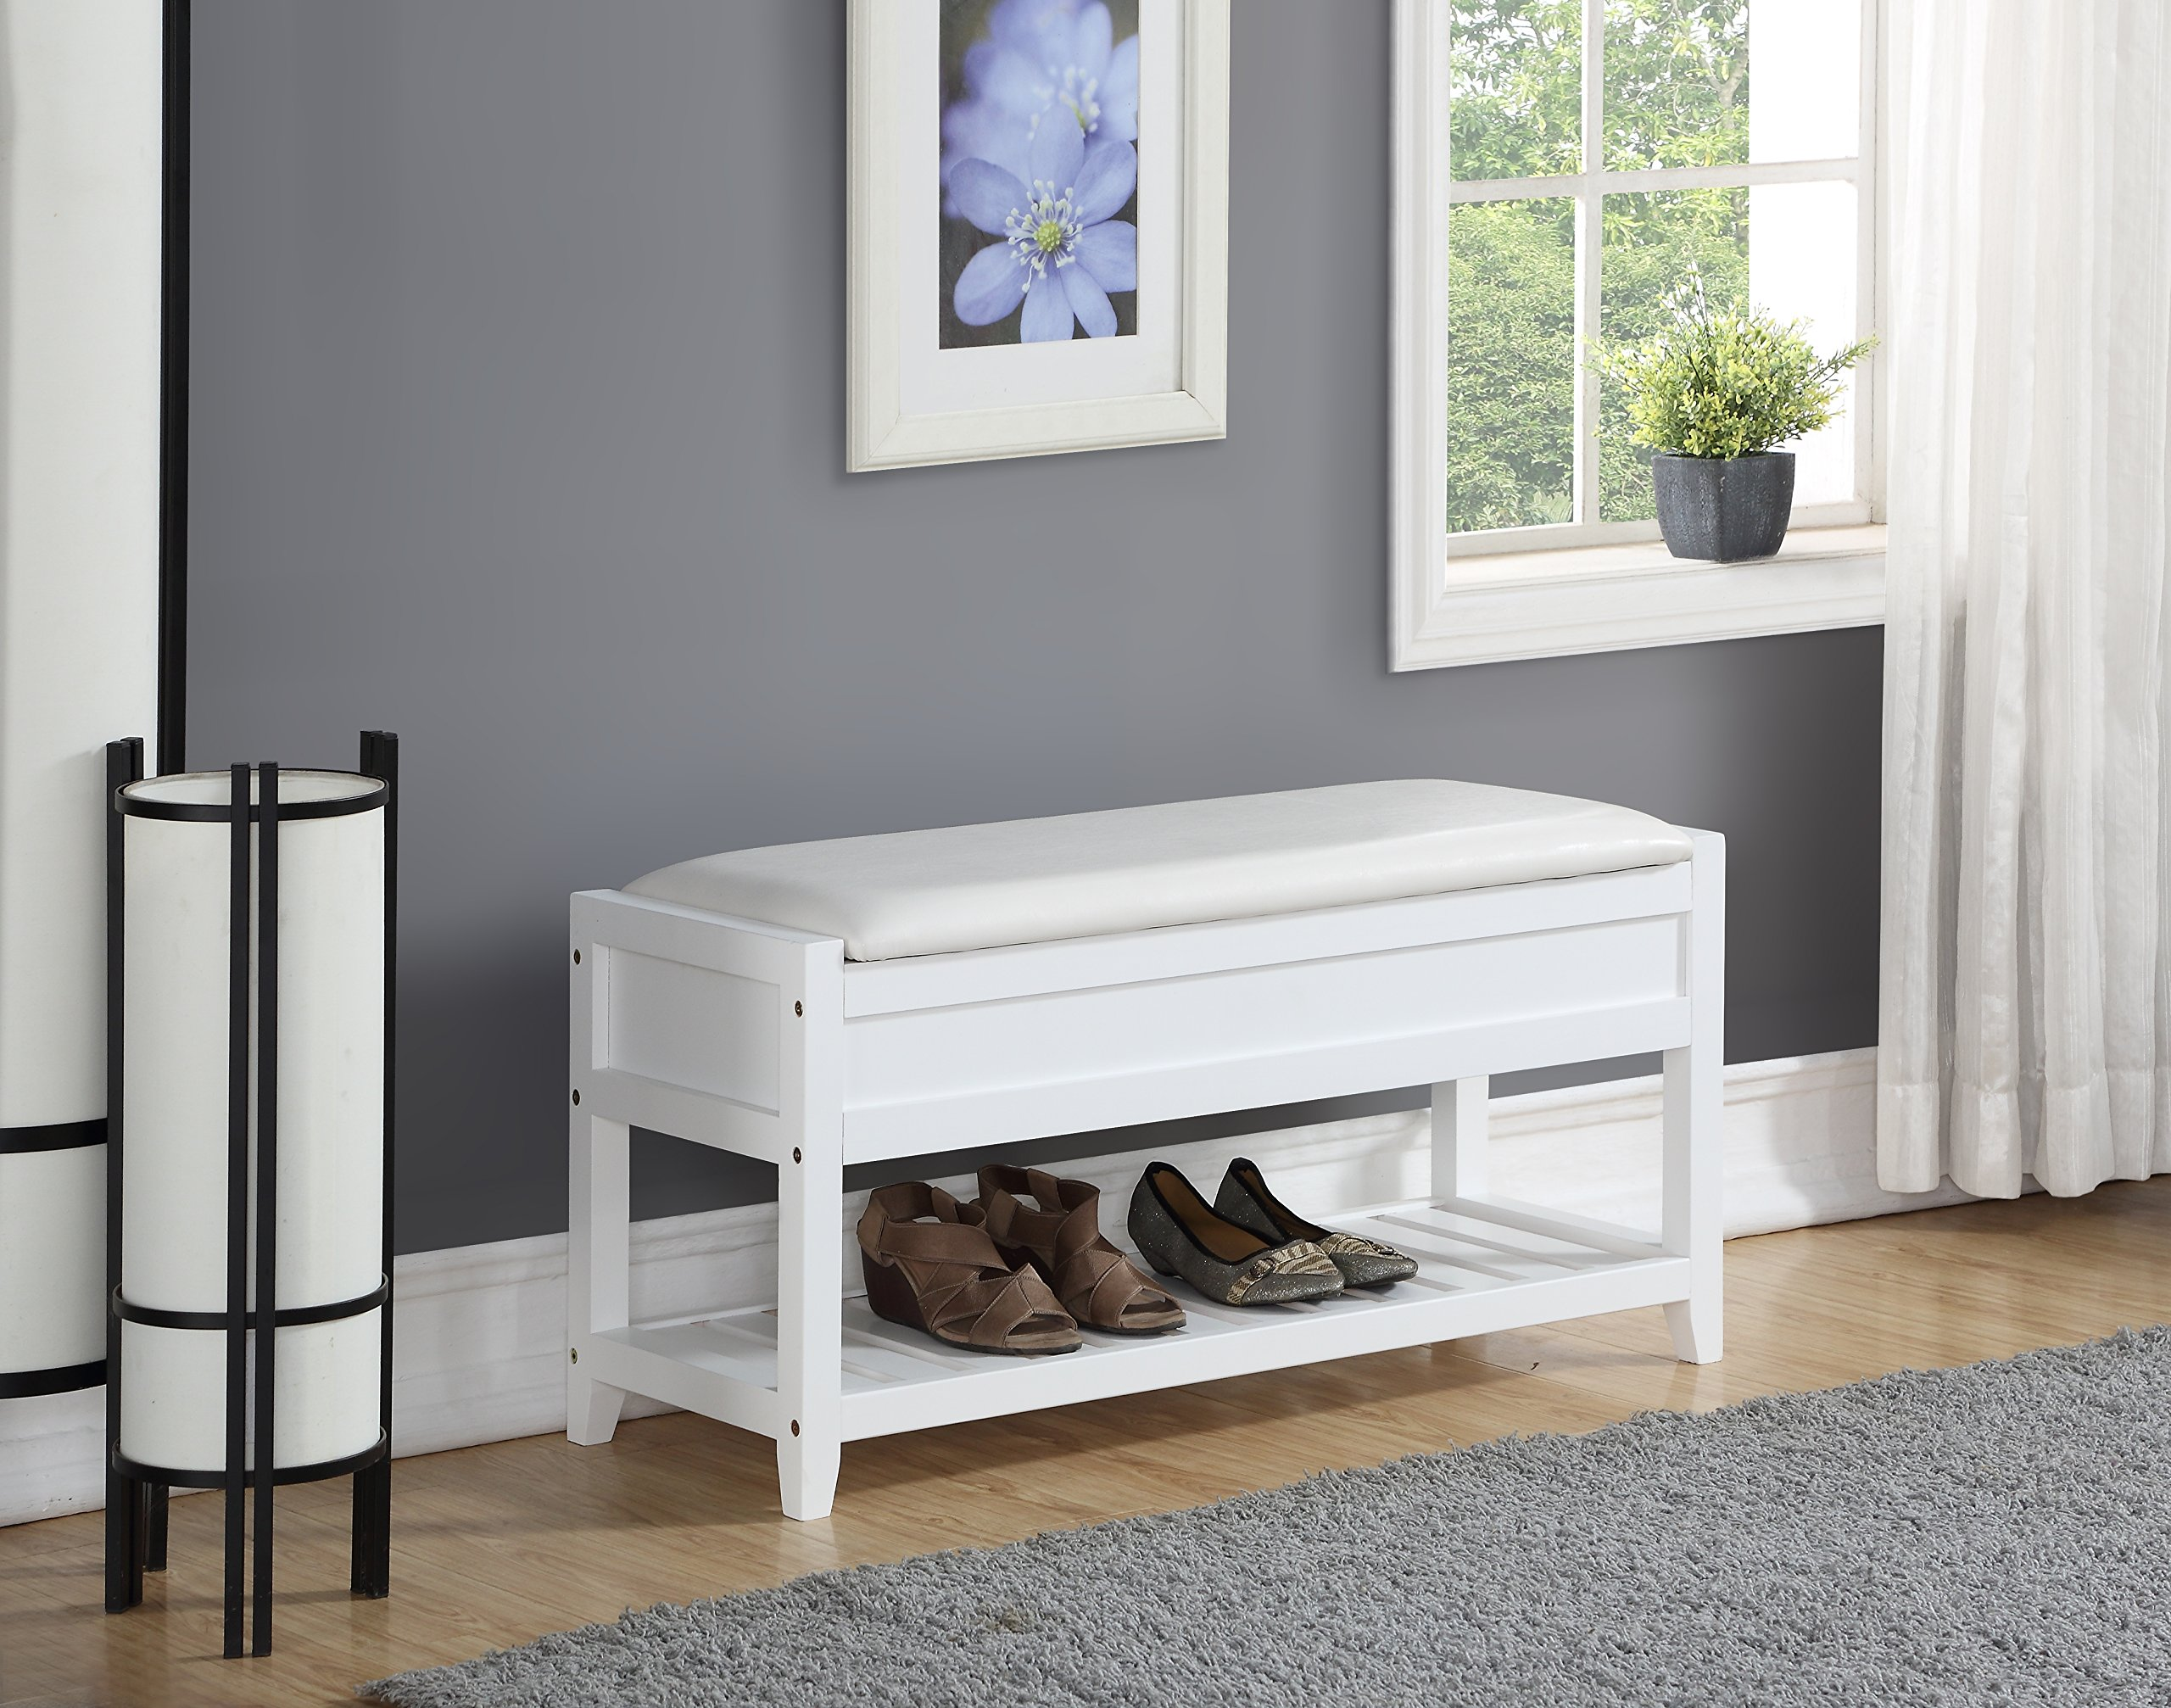 Roundhill Furniture 3431WH Rouen Clean Seating Bench with Shoe Storage, White